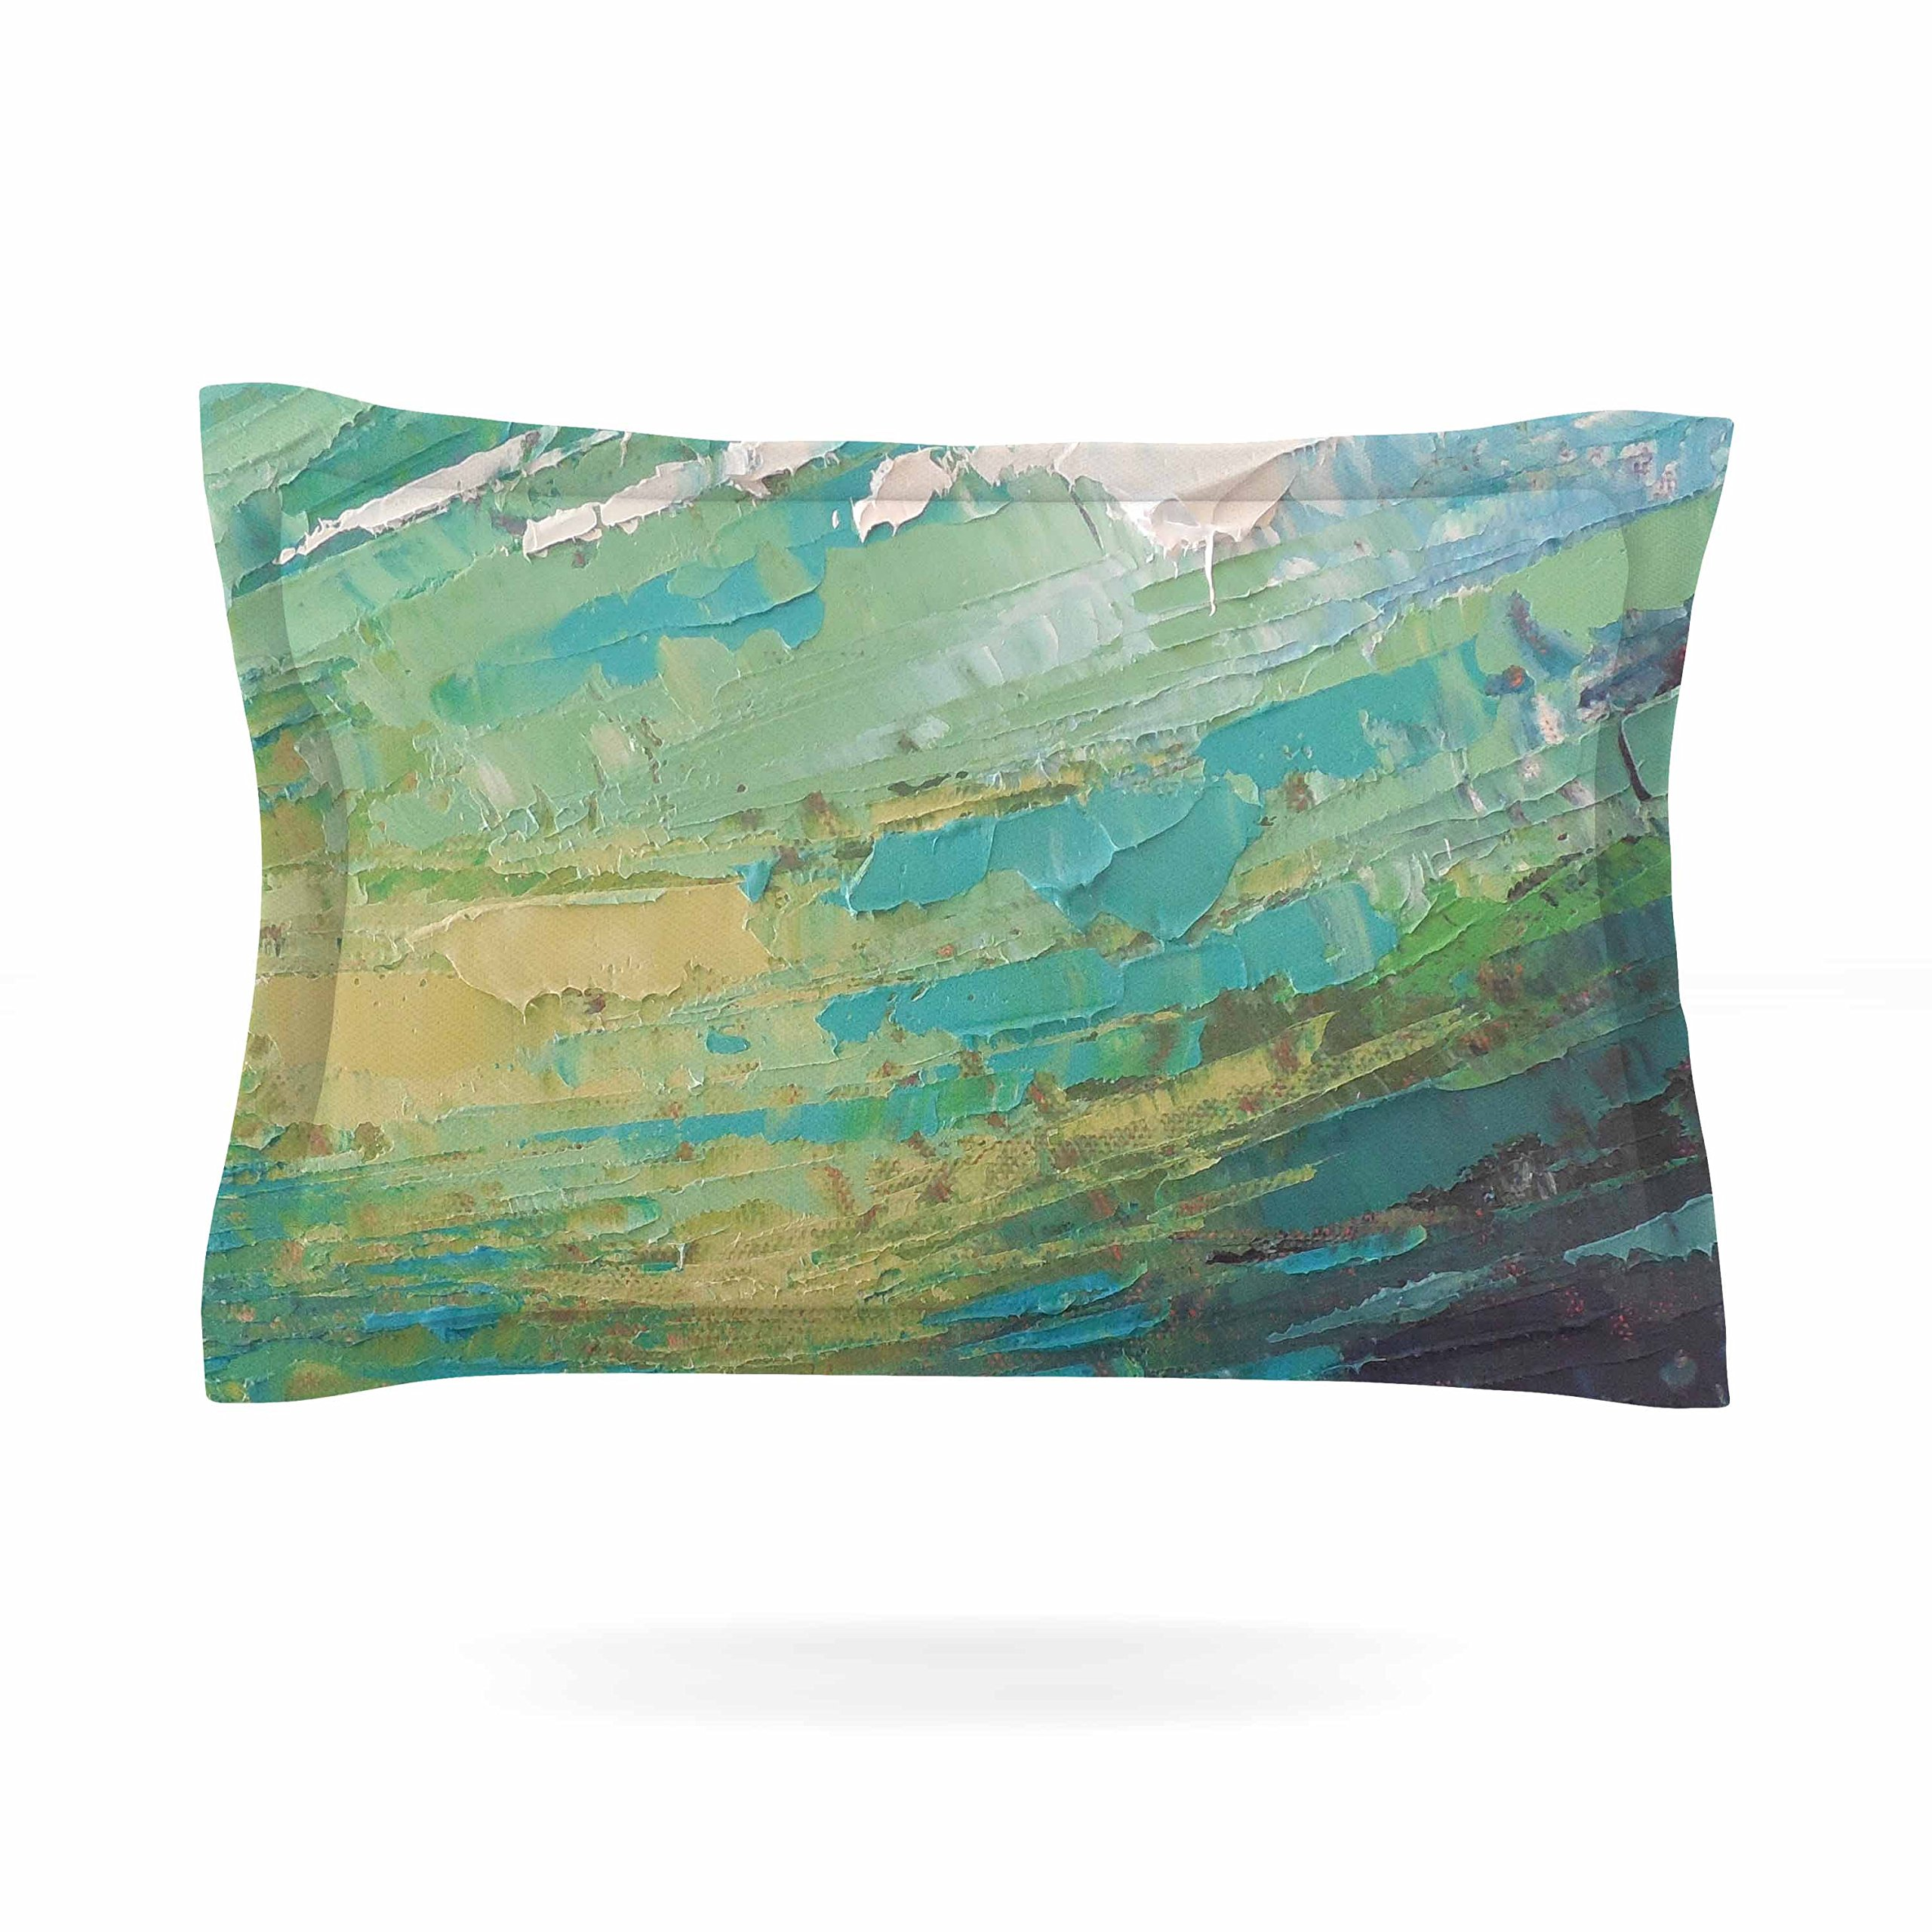 KESS InHouse Carol Schiff ''Sea Dance'' Teal Green Painting Pillow Sham, 30'' x 20''